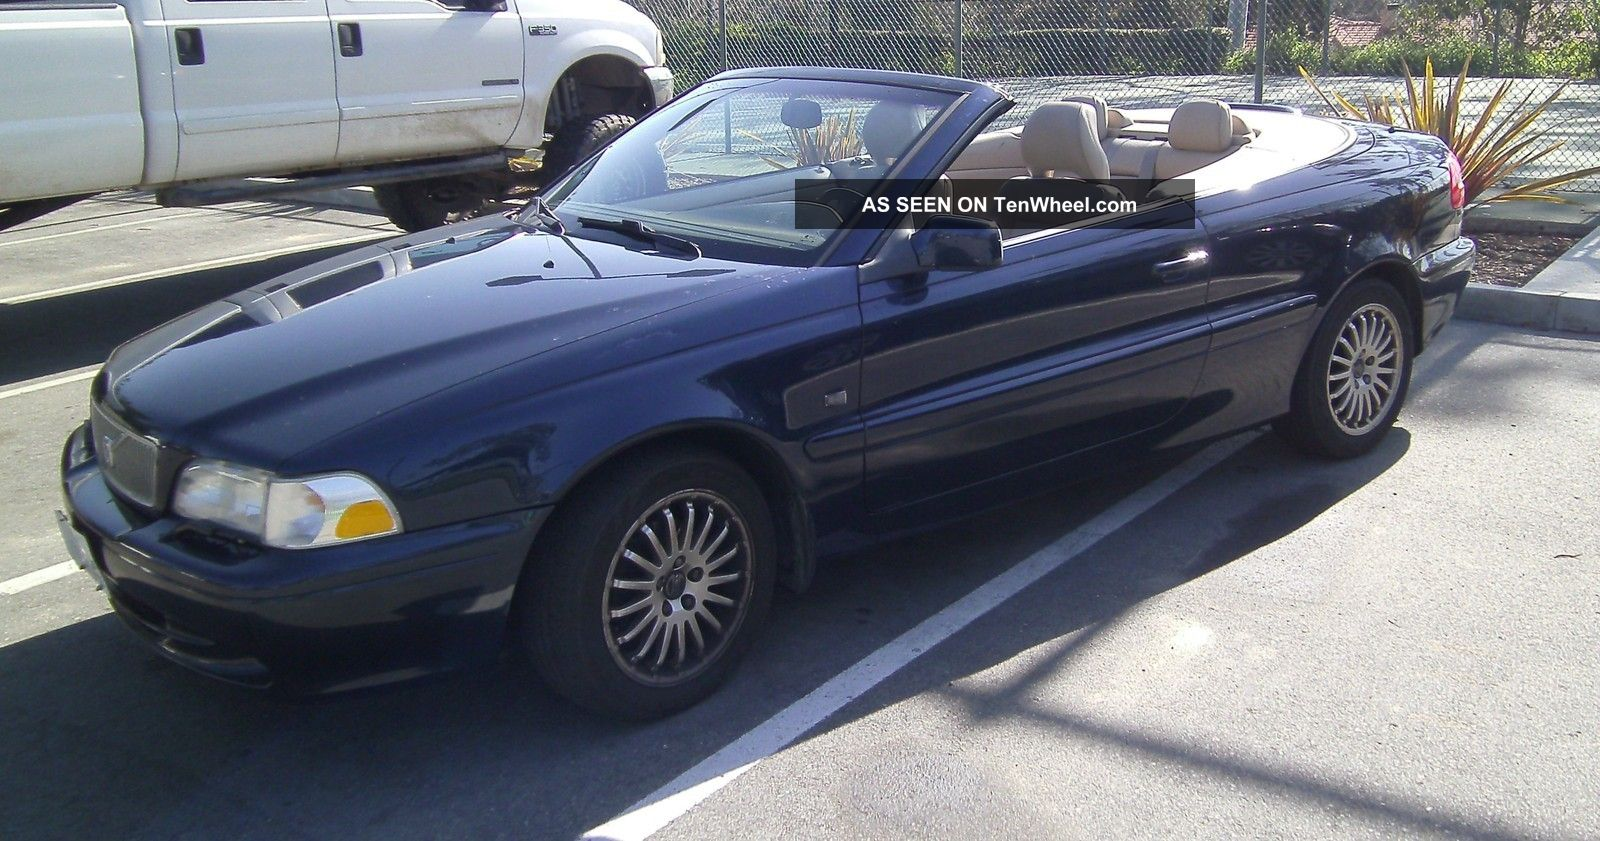 2002 volvo c70 convertable with 5 speed manual transmission volvo c70 convertible manual close volvo c70 convertible manual transmission